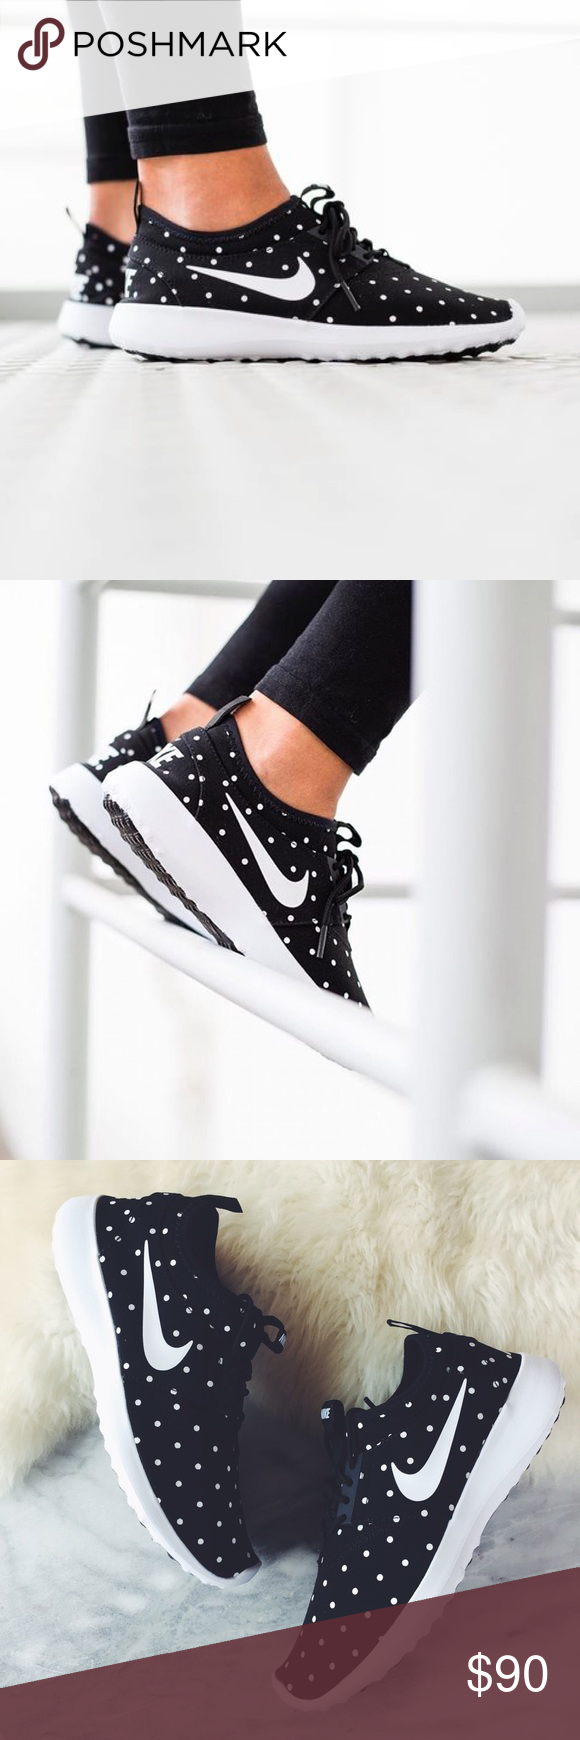 25b96998d2c ... black and white polka dot print Juvenate sneakers. Seamless